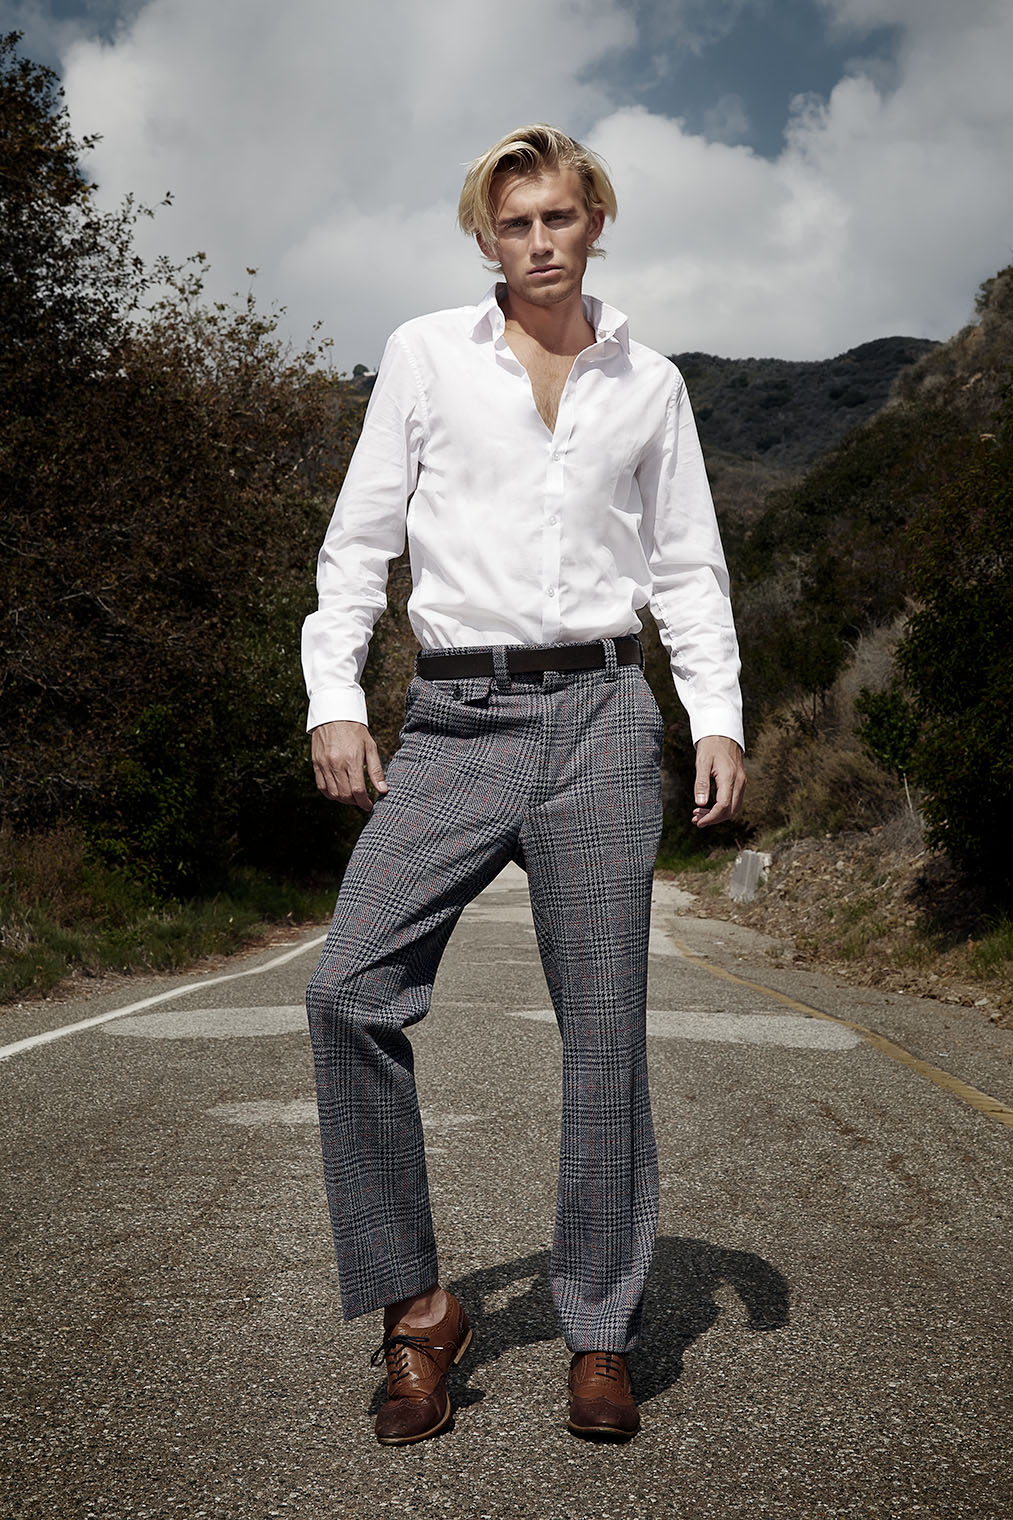 cool and masculine man showing off his stylish clothes walking a country road towards the hills in Malibu, California